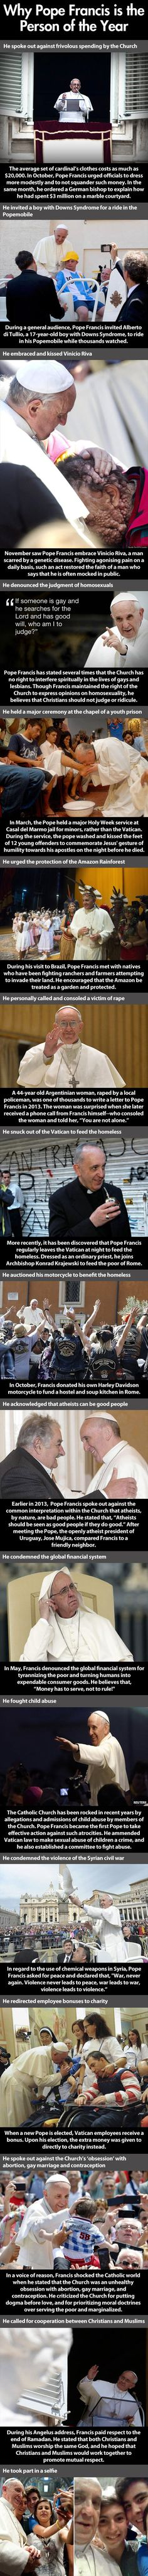 Pope Francis is restoring my faith in the Catholic Church (I have been a lapsed Catholic for almost 20 years).  Great to see his love of all.